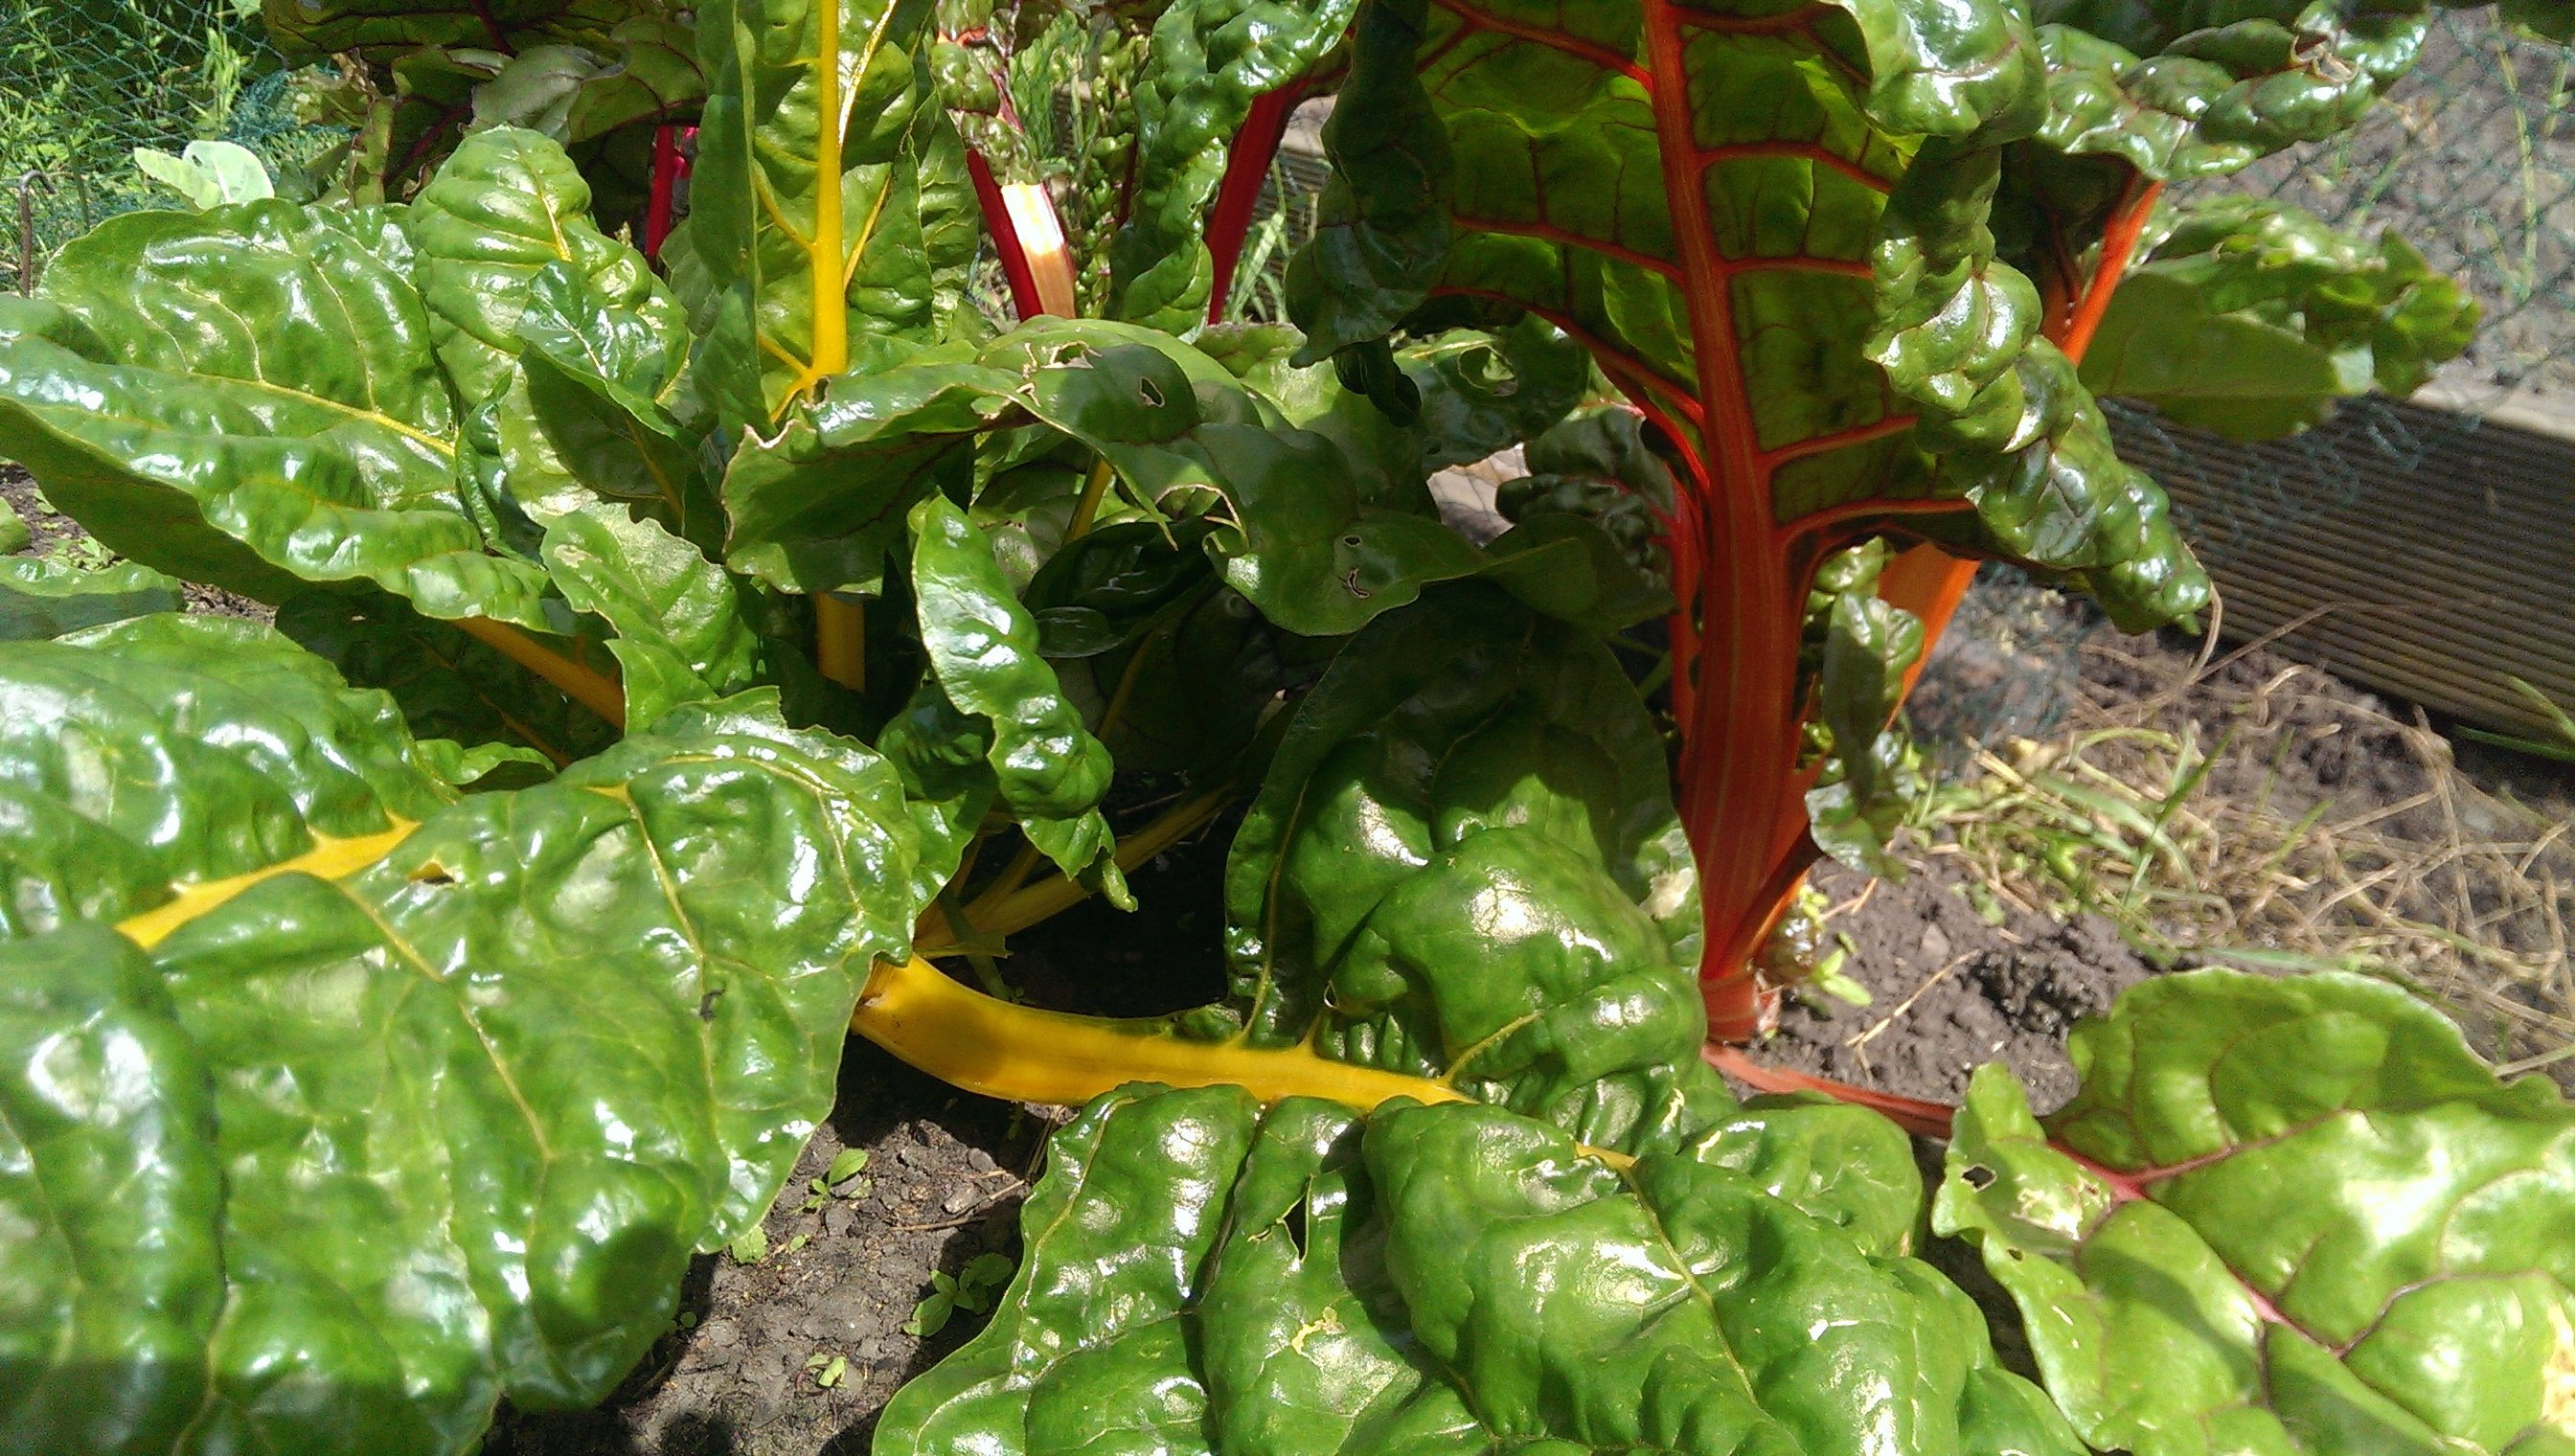 chard in the allotment